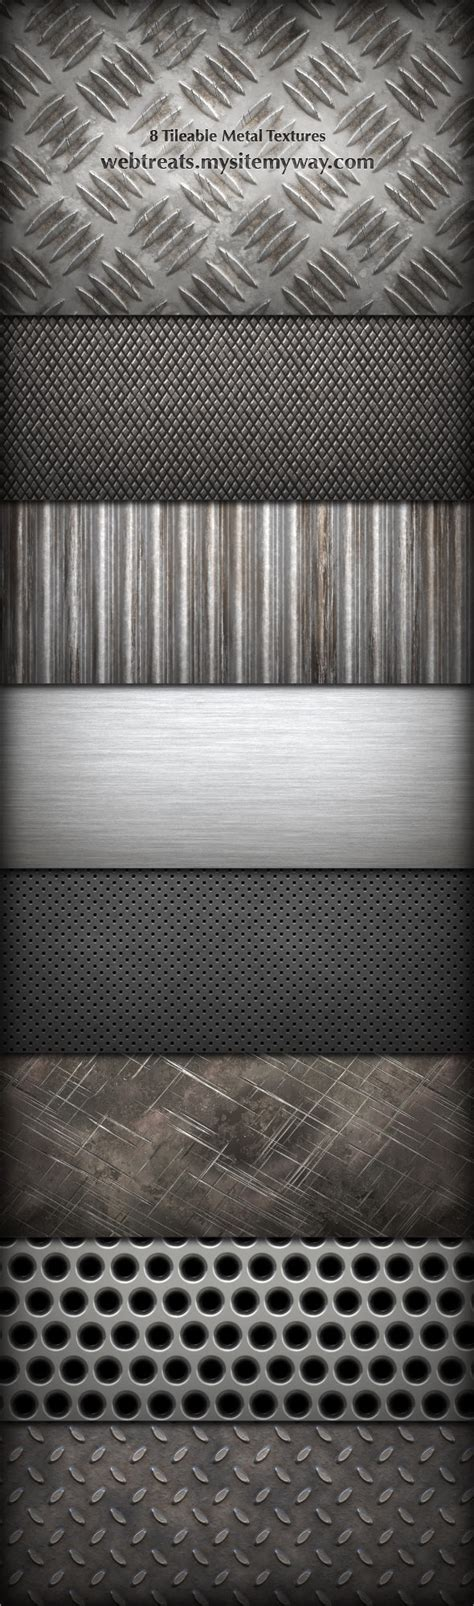 metal pattern for photoshop free download over 1000 amazing photoshop textures and patterns sets are